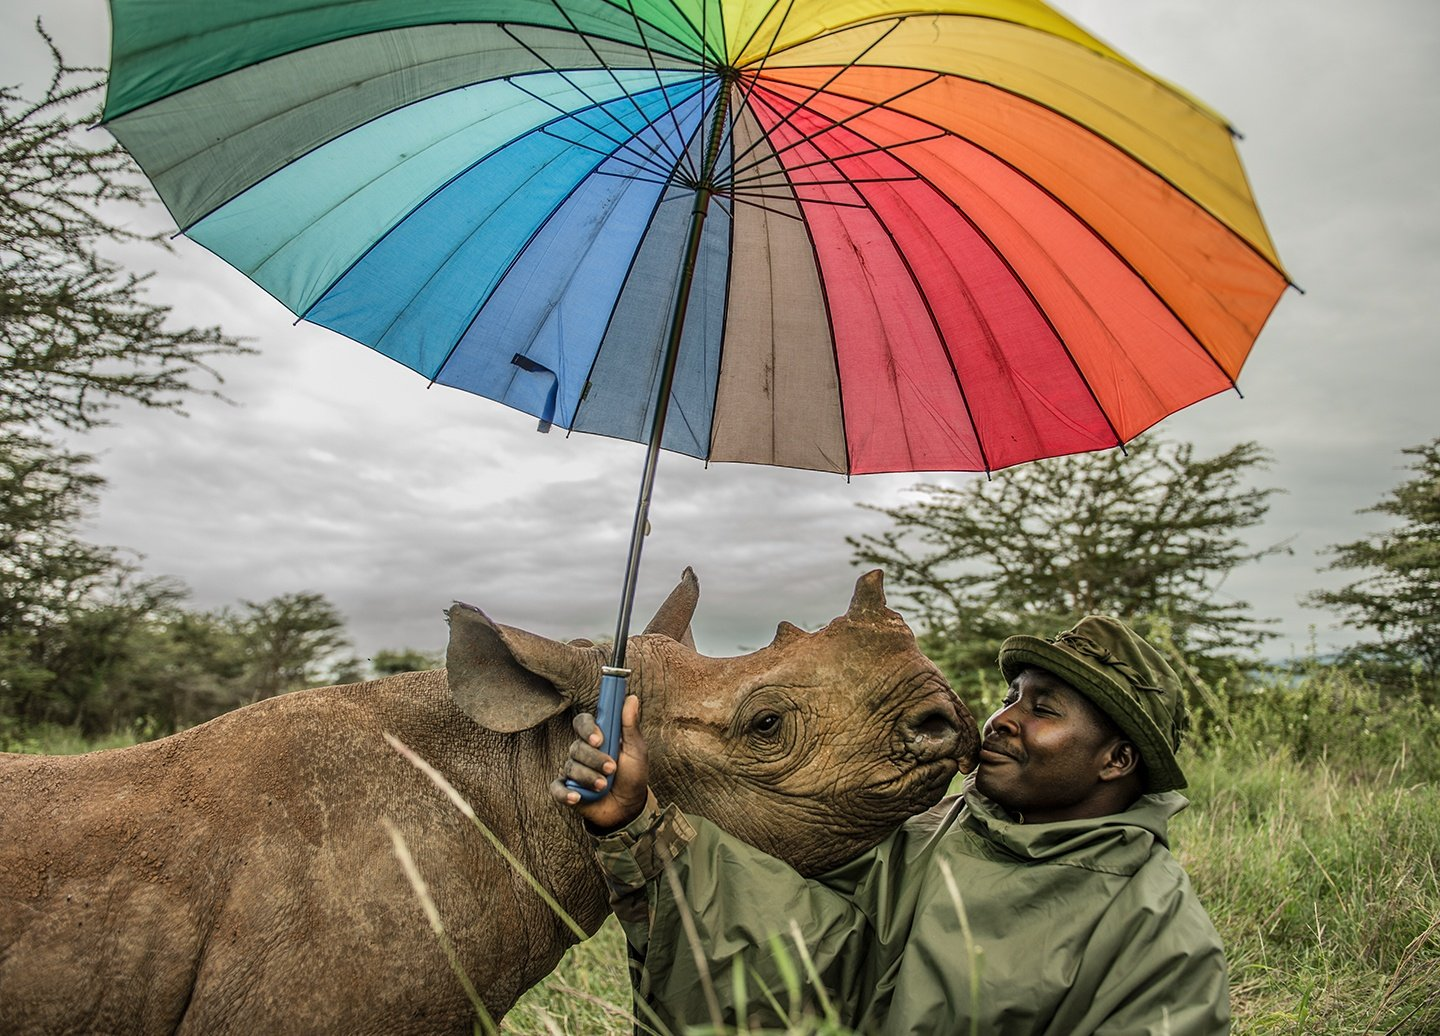 Kamara is nuzzled by a black rhino named Kilifi, who he hand-raised along with two other baby rhinos at Lewa Wildlife Conservancy in Kenya.